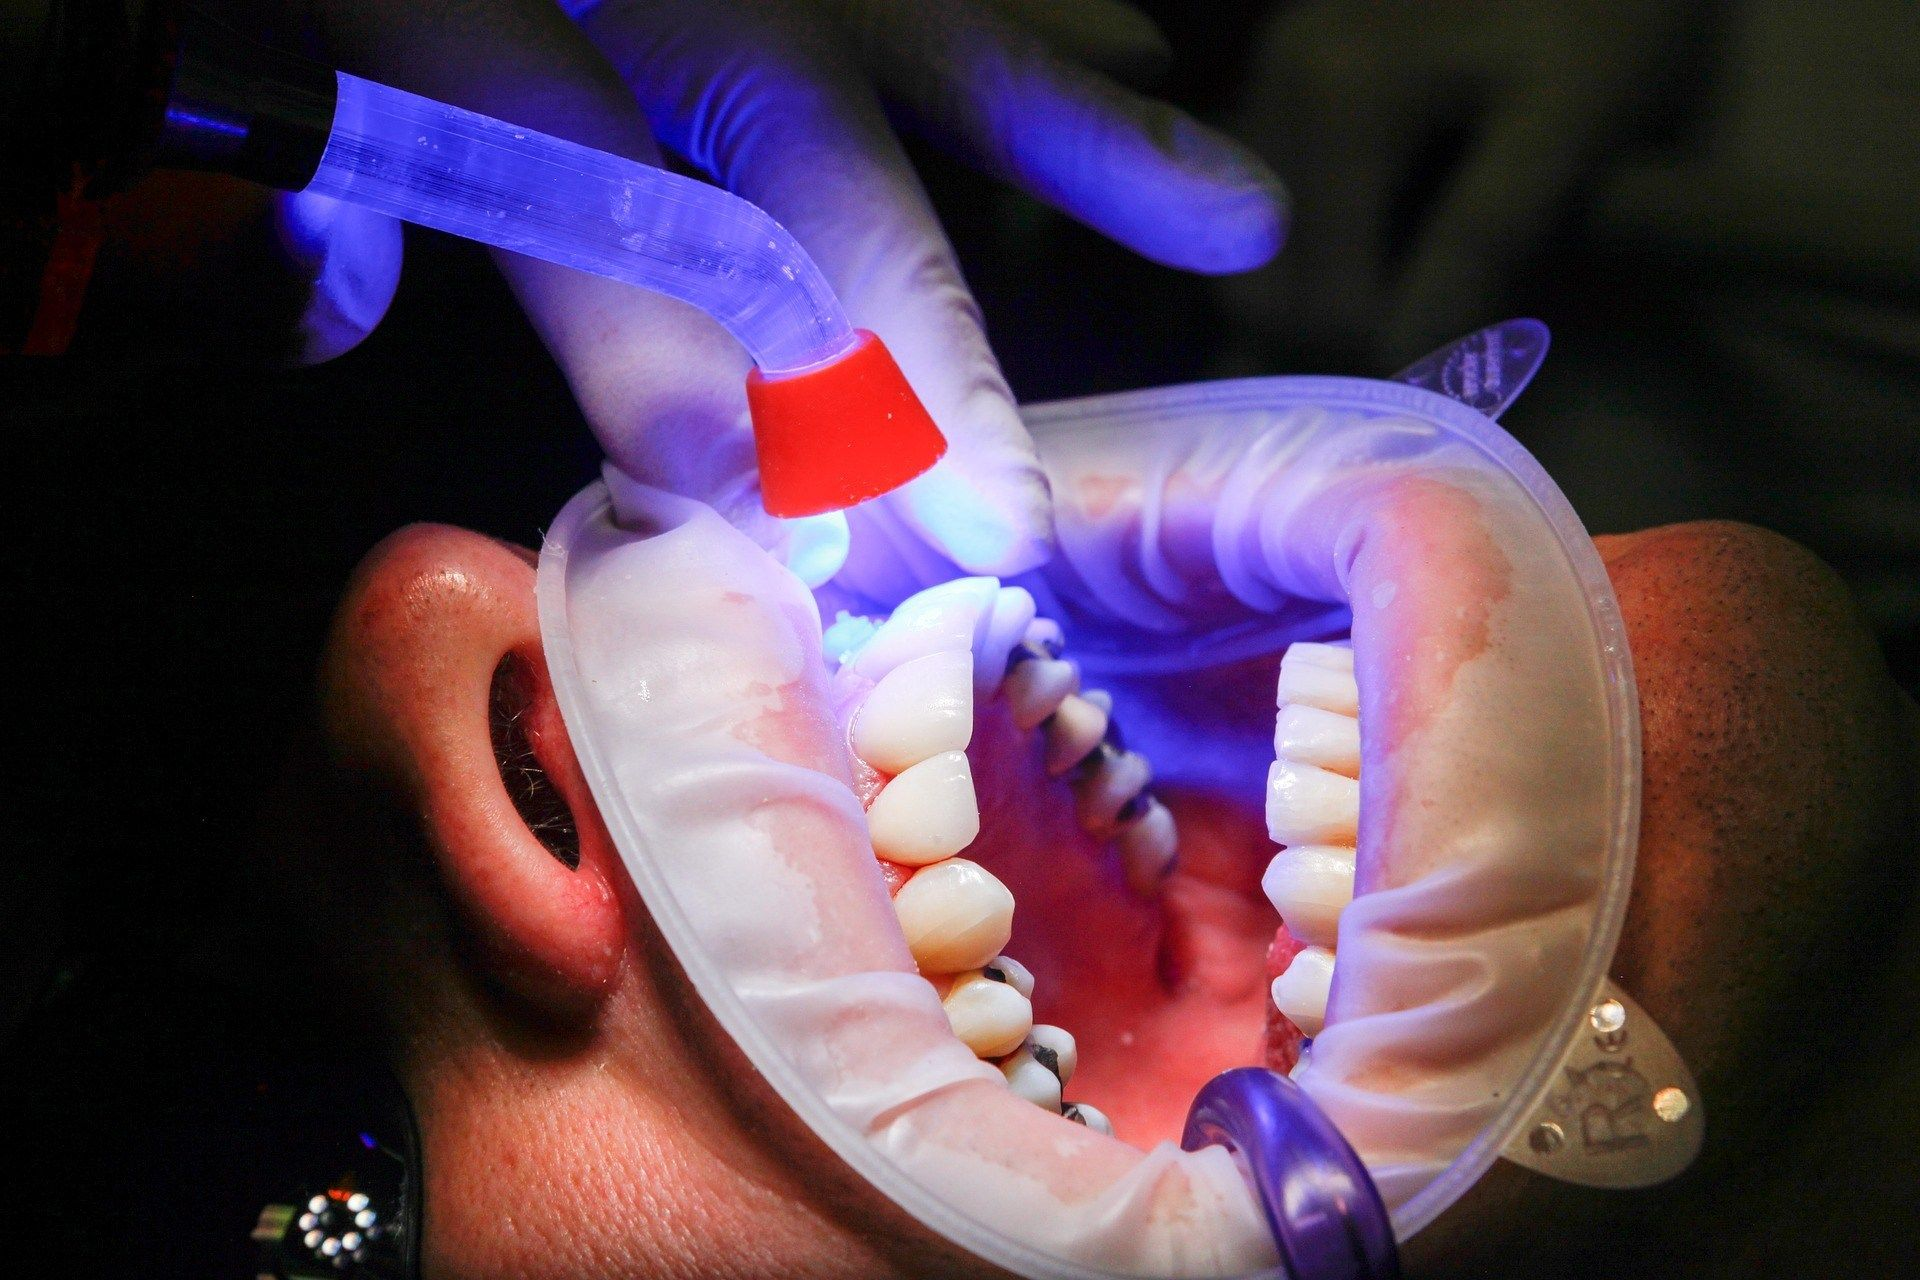 Dental Fillings What Are Your Choices And How Does It Work Dentalfillings Typesofdentalfillings De Dental Cosmetics After Wisdom Teeth Removal Dental Care